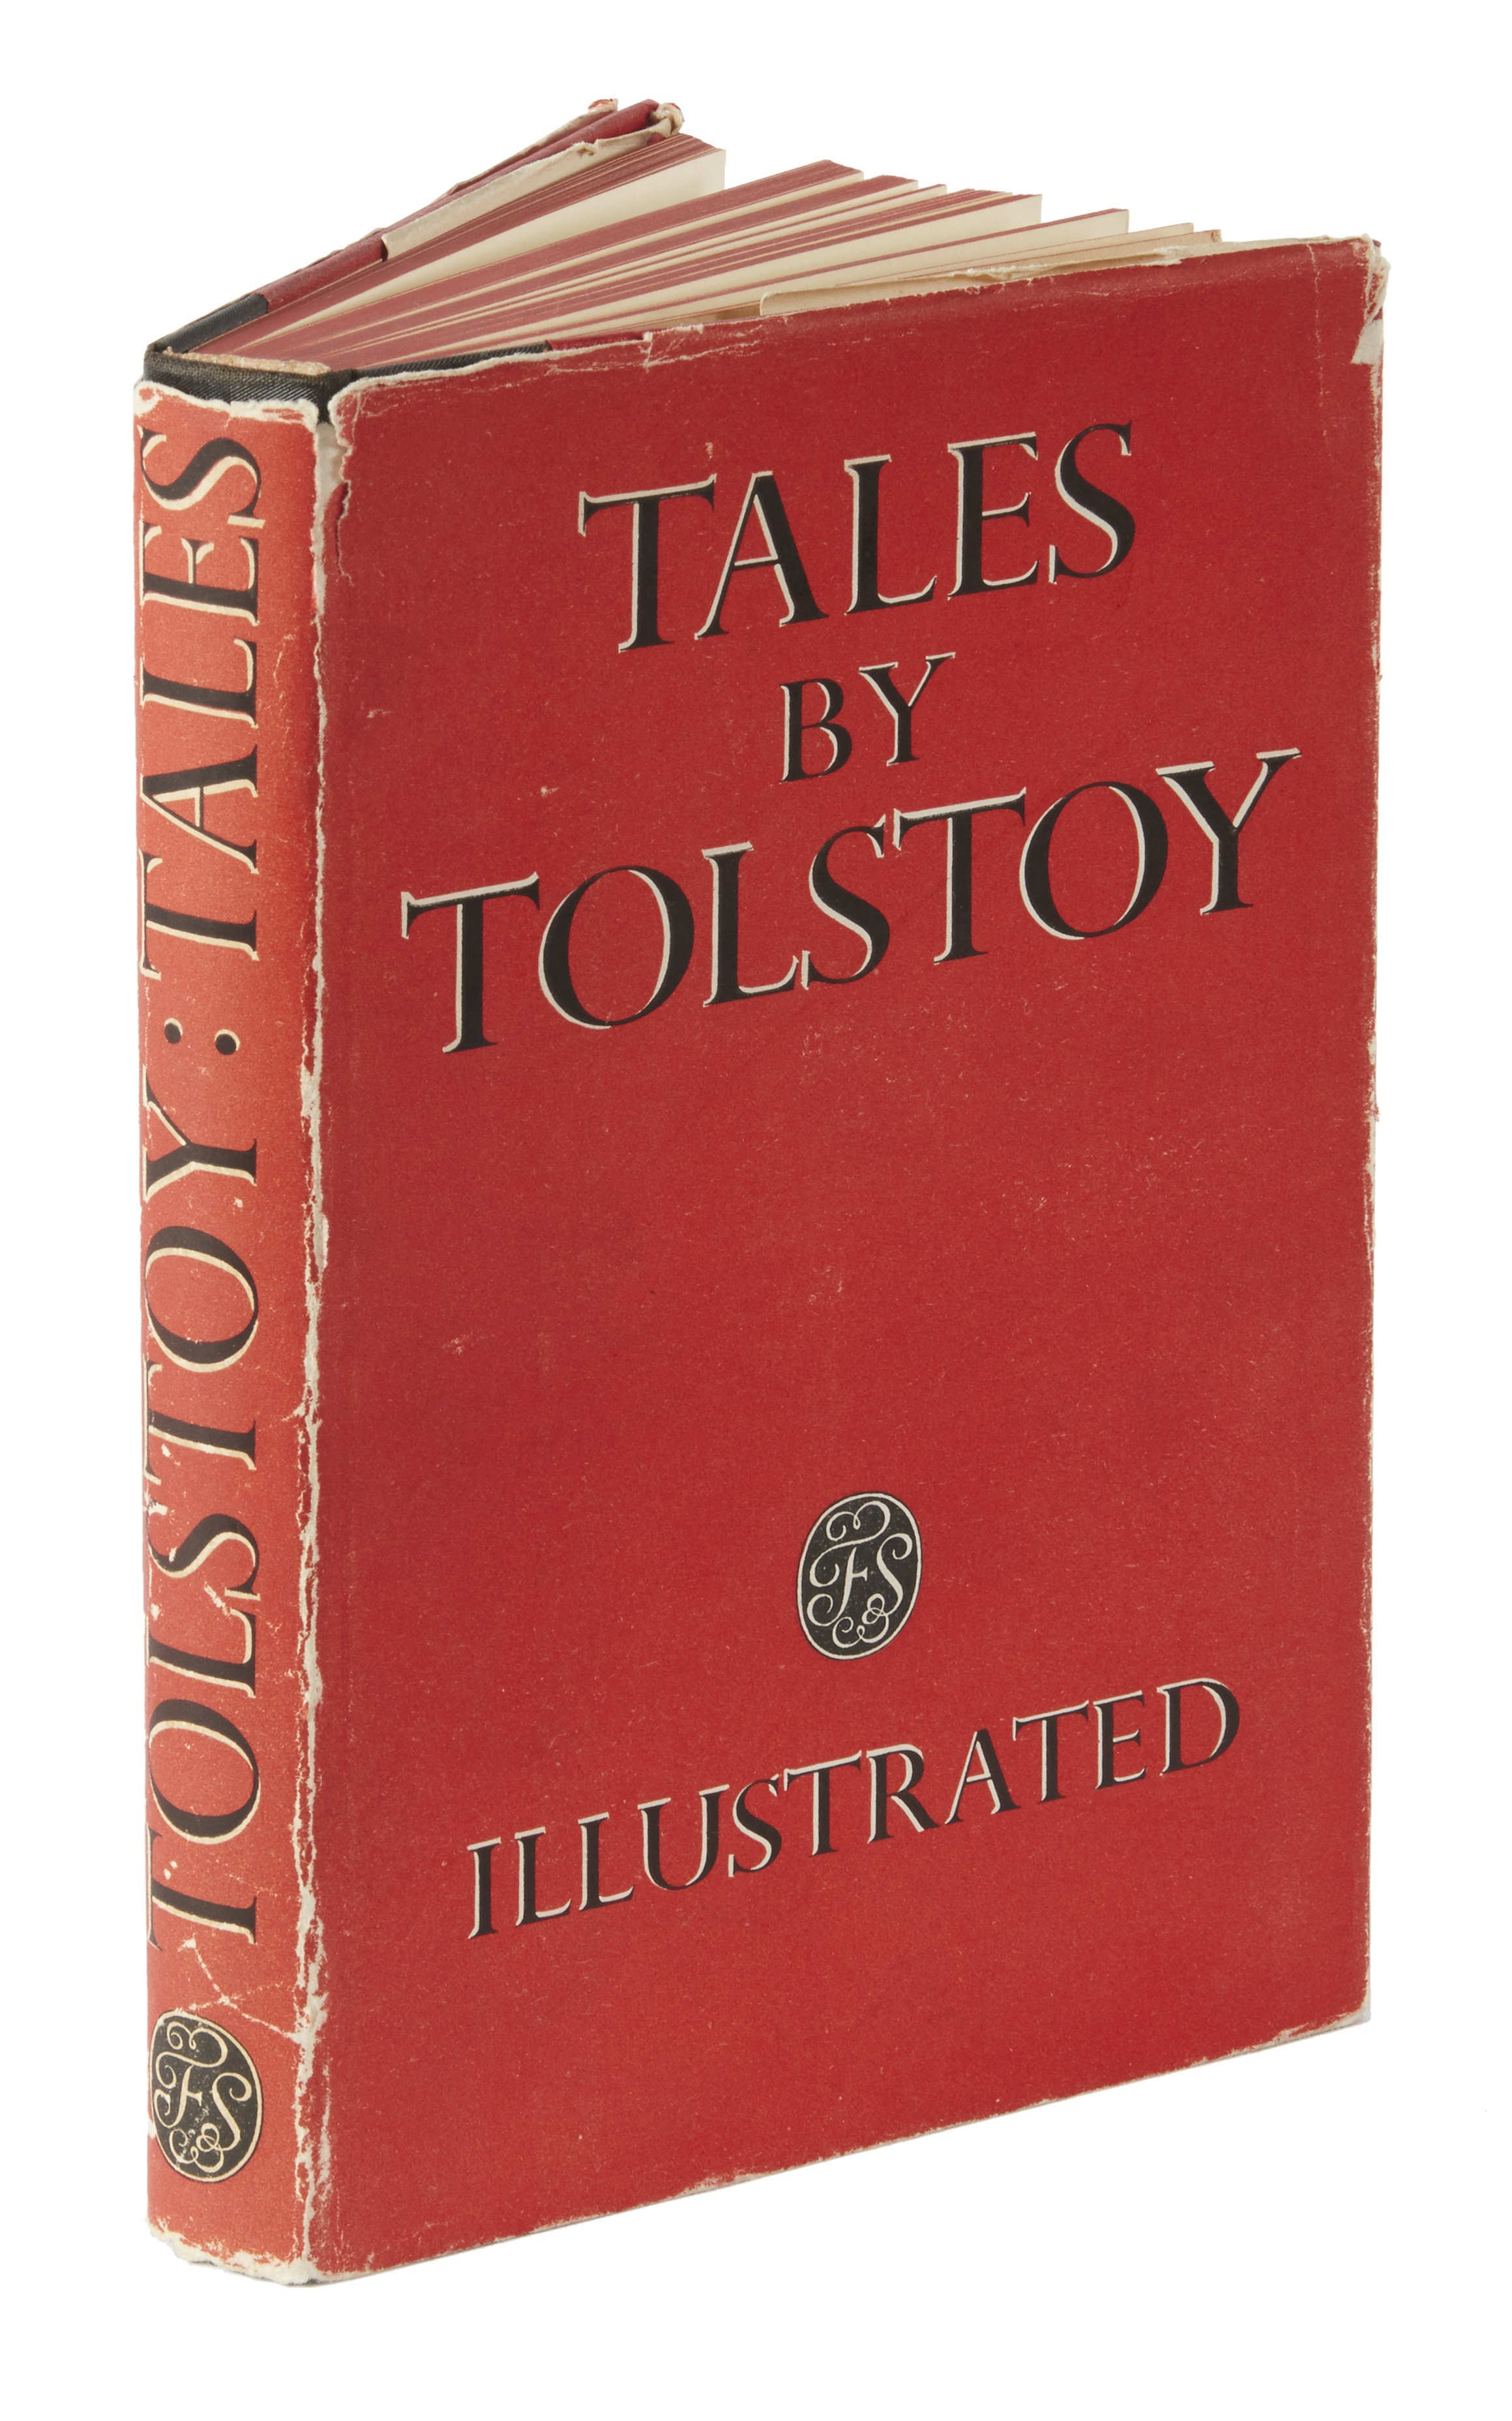 Tales By Tolstoy, The Folio Society edition 1947.jpg